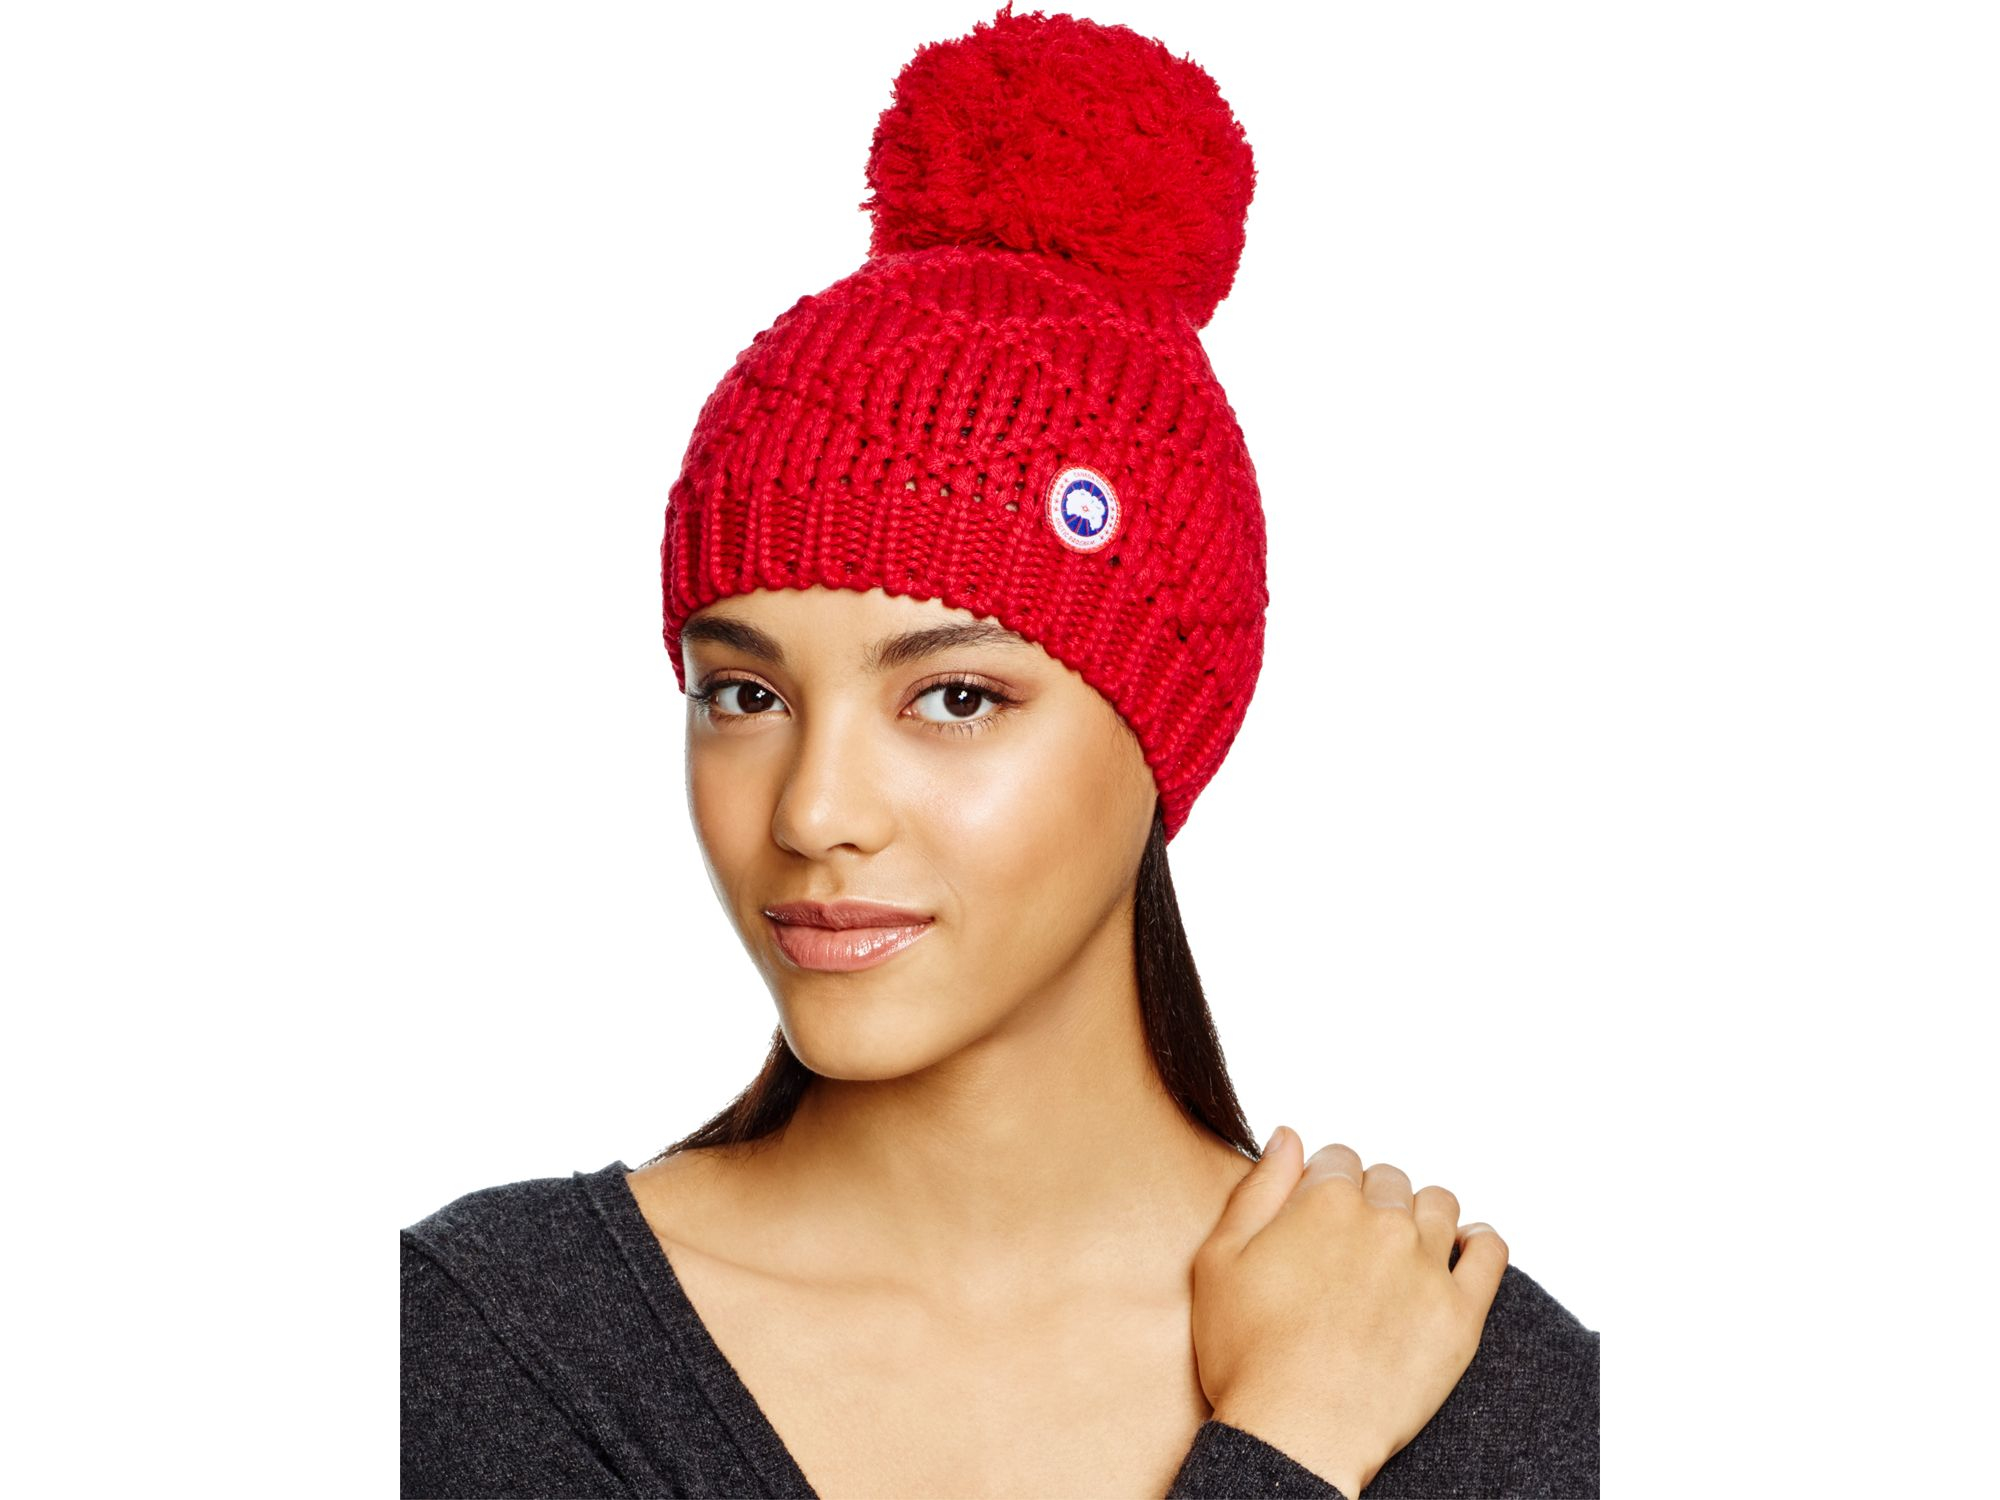 Lyst - Canada Goose Merino Wool Beanie With Oversized Pom-pom in Red 67e52afedc6